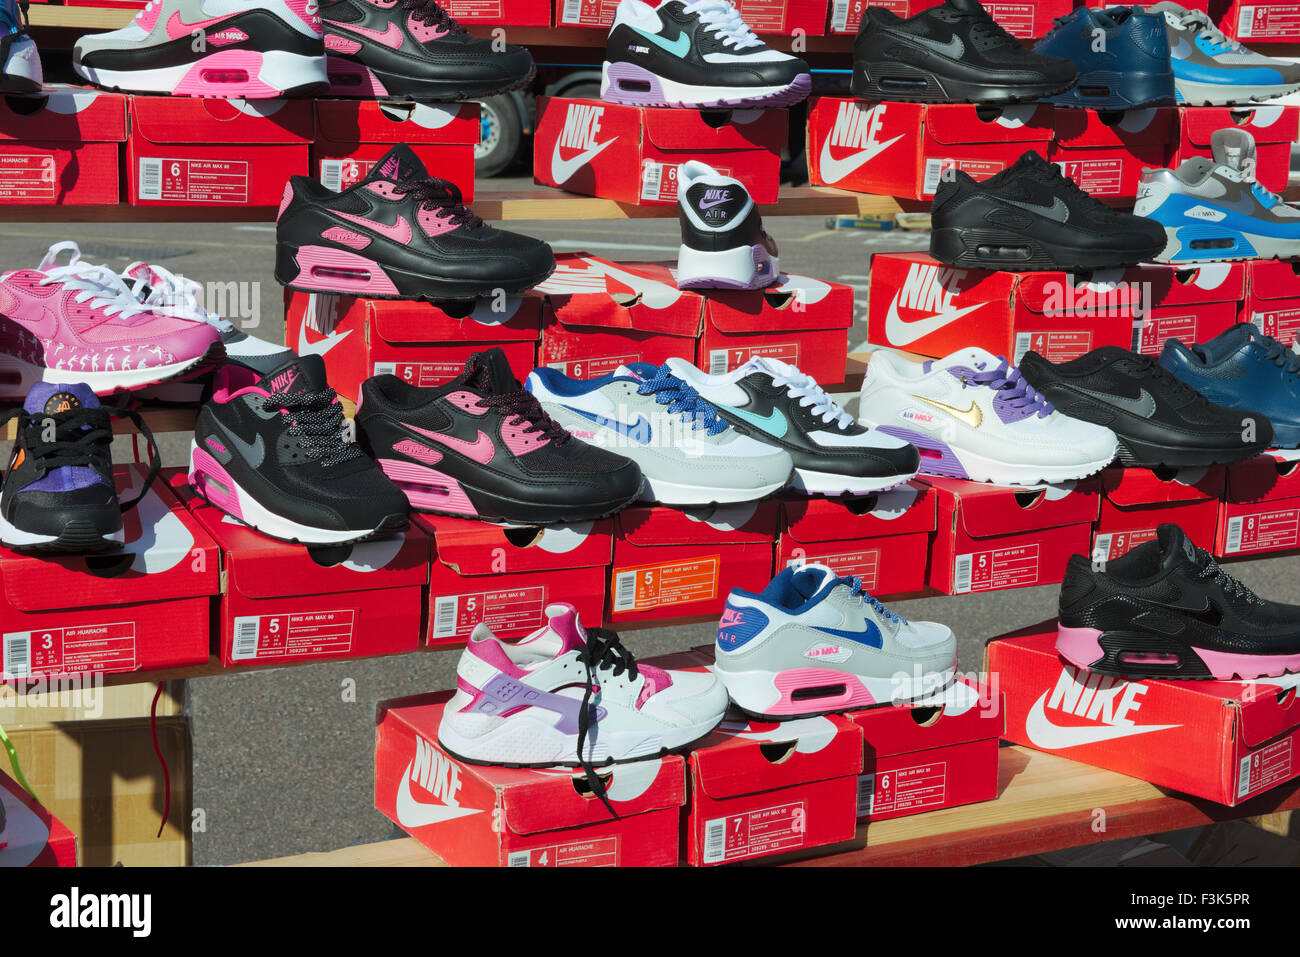 Display of colourful trainers on sale in outdoor market stall - Stock Image